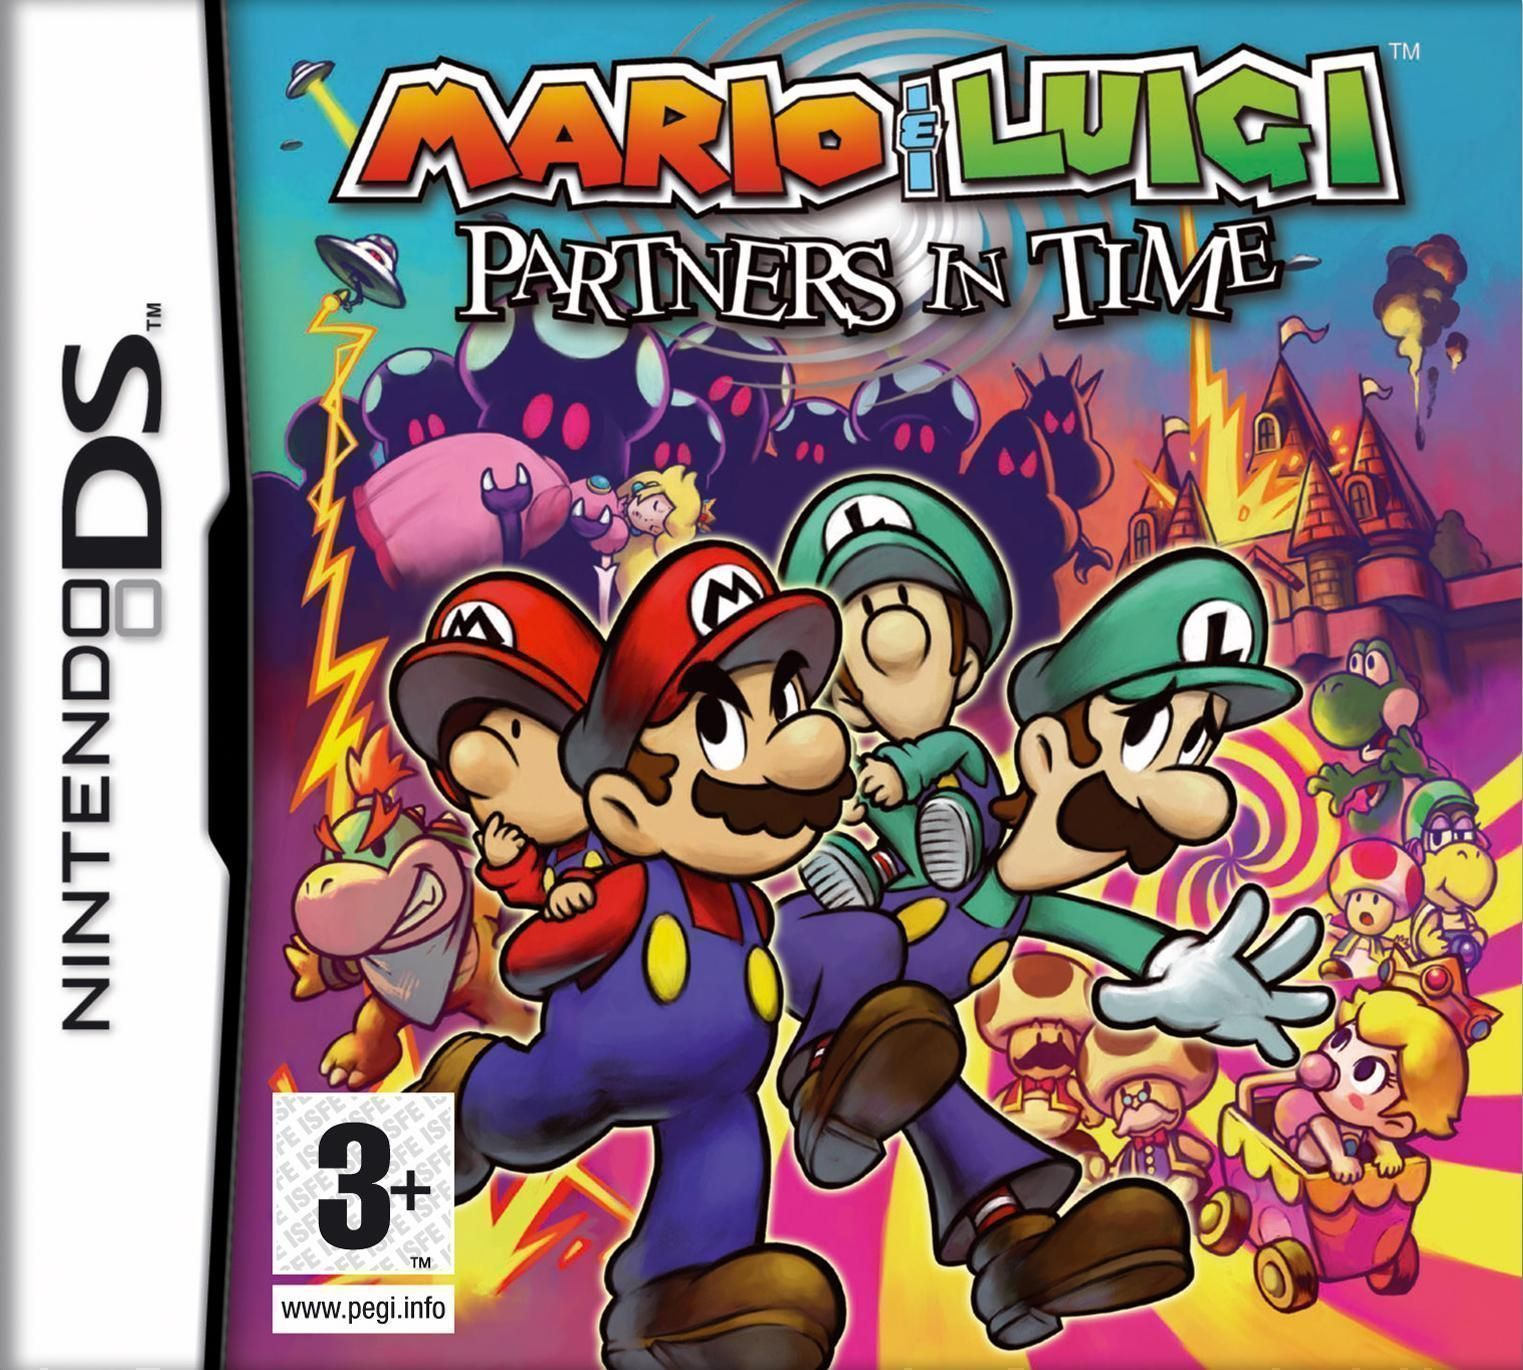 0297 - Mario & Luigi - Partners In Time